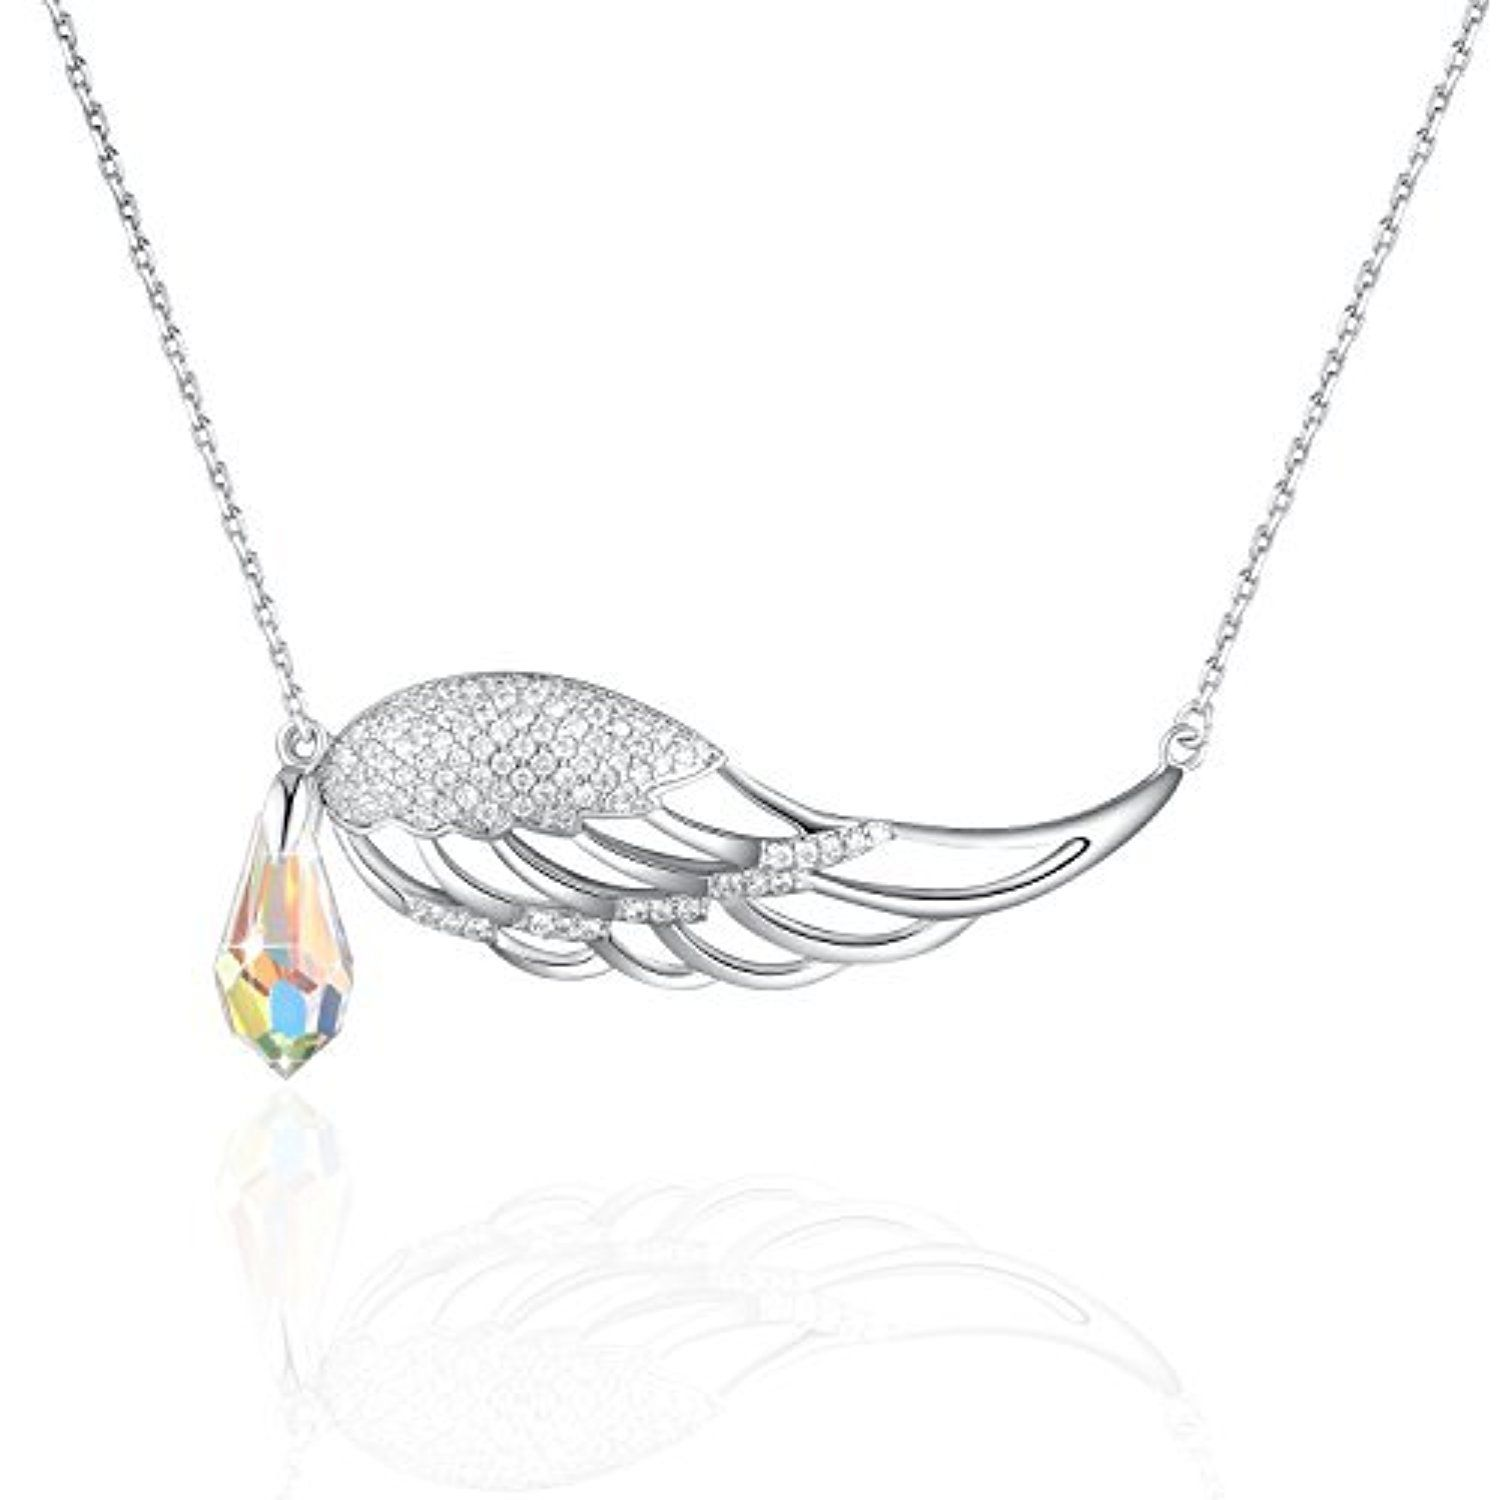 Plato h guardian angel wing drop pendant necklace with swarovski